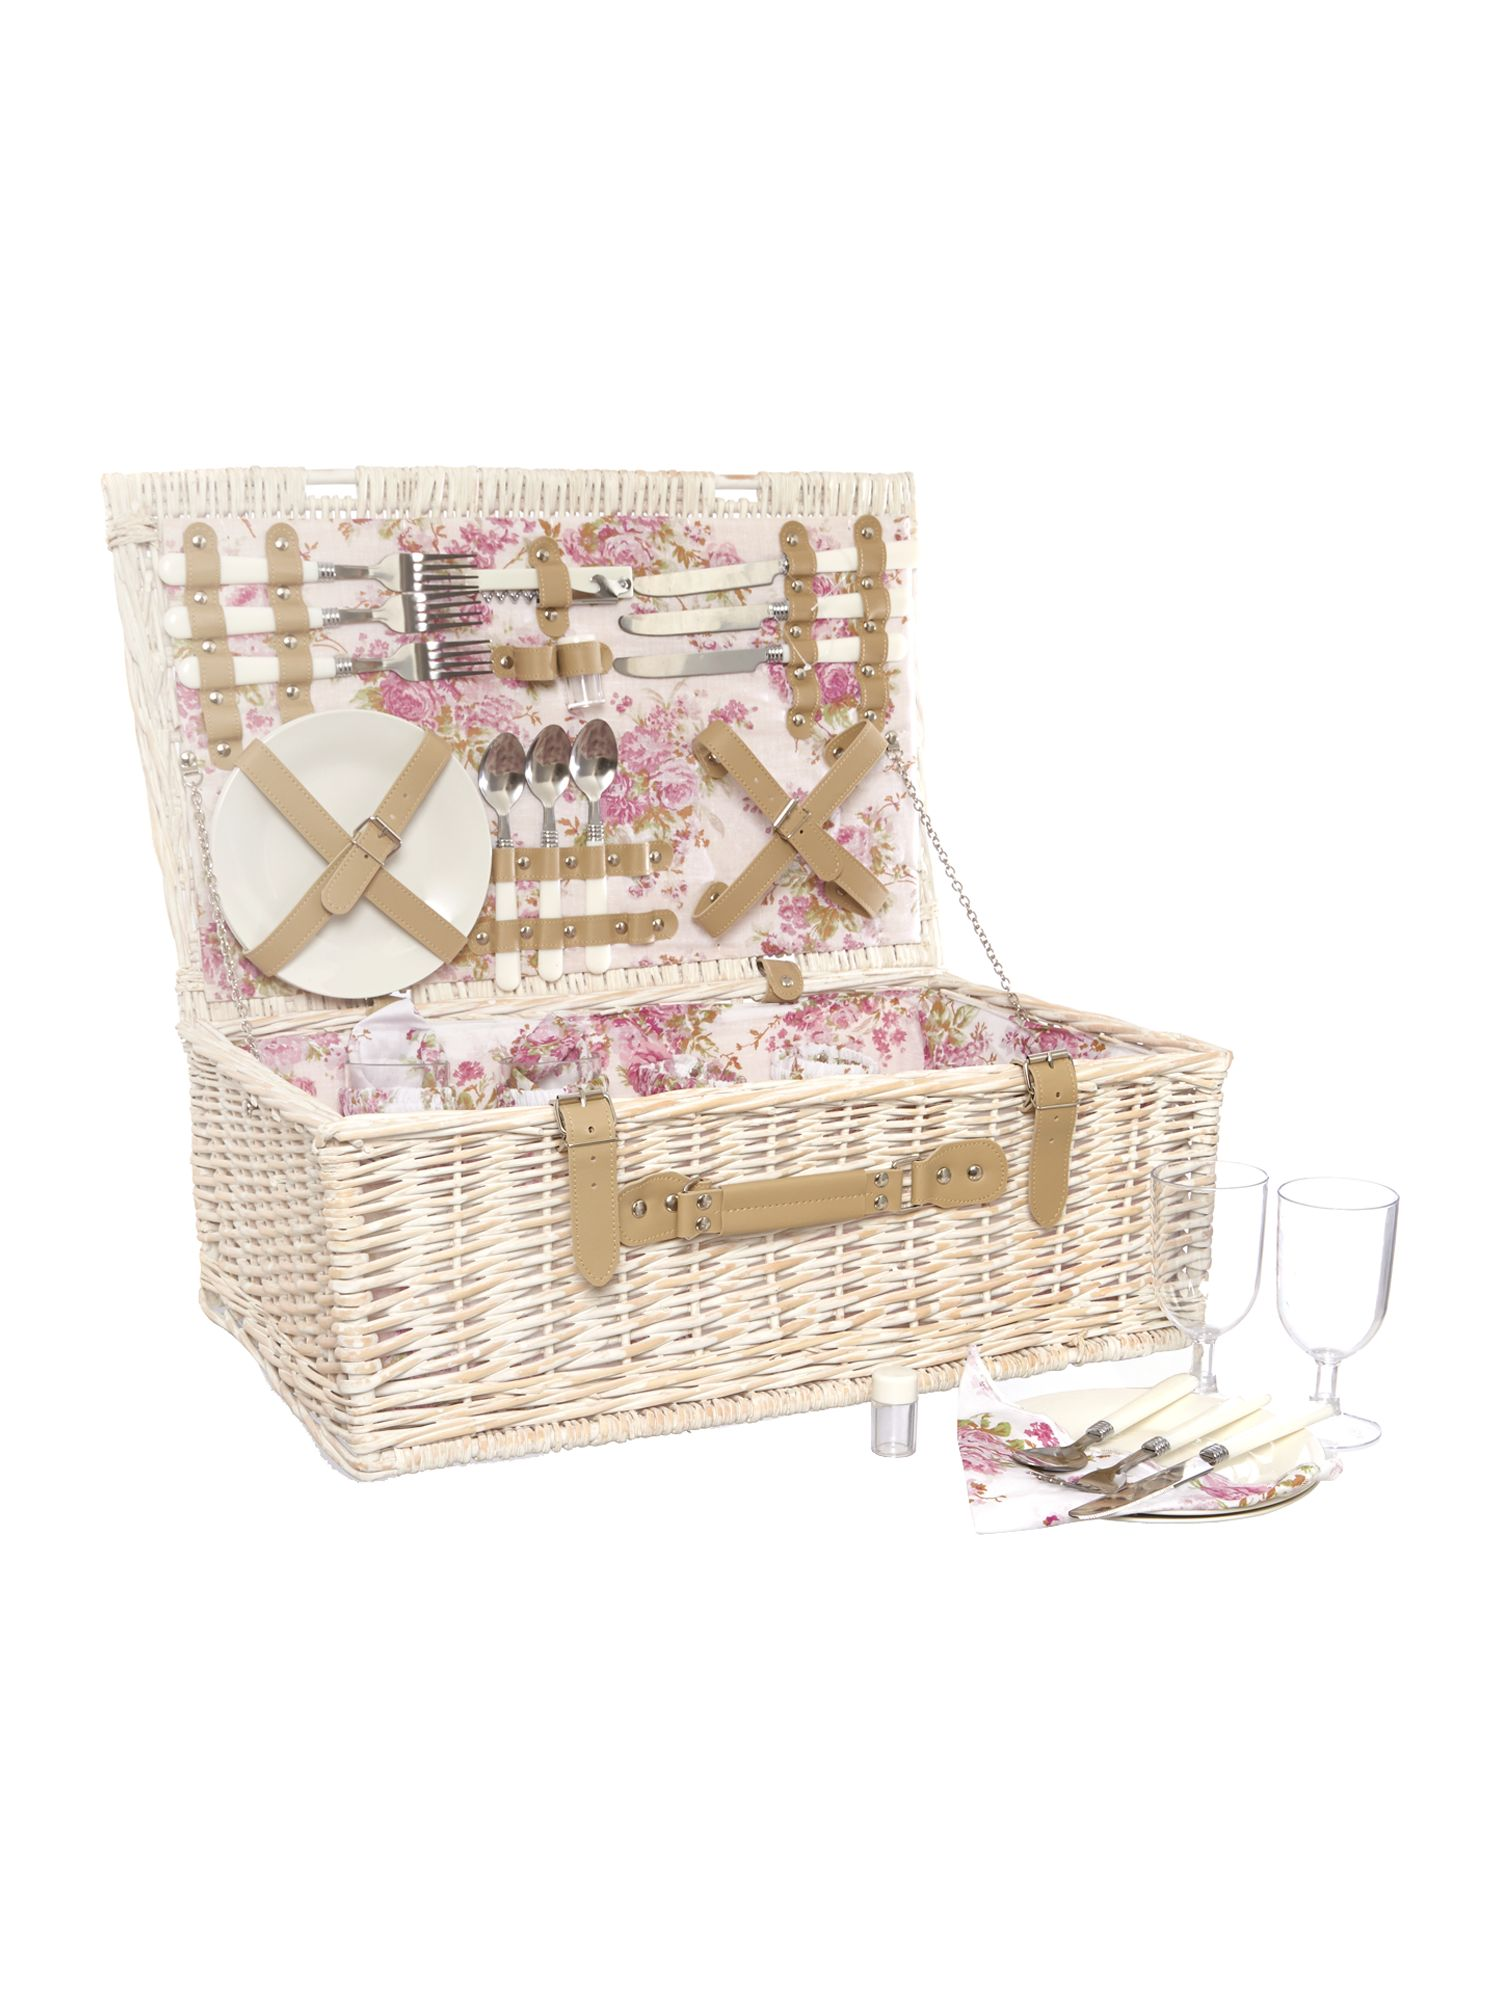 Meadow floral 4 person hamper